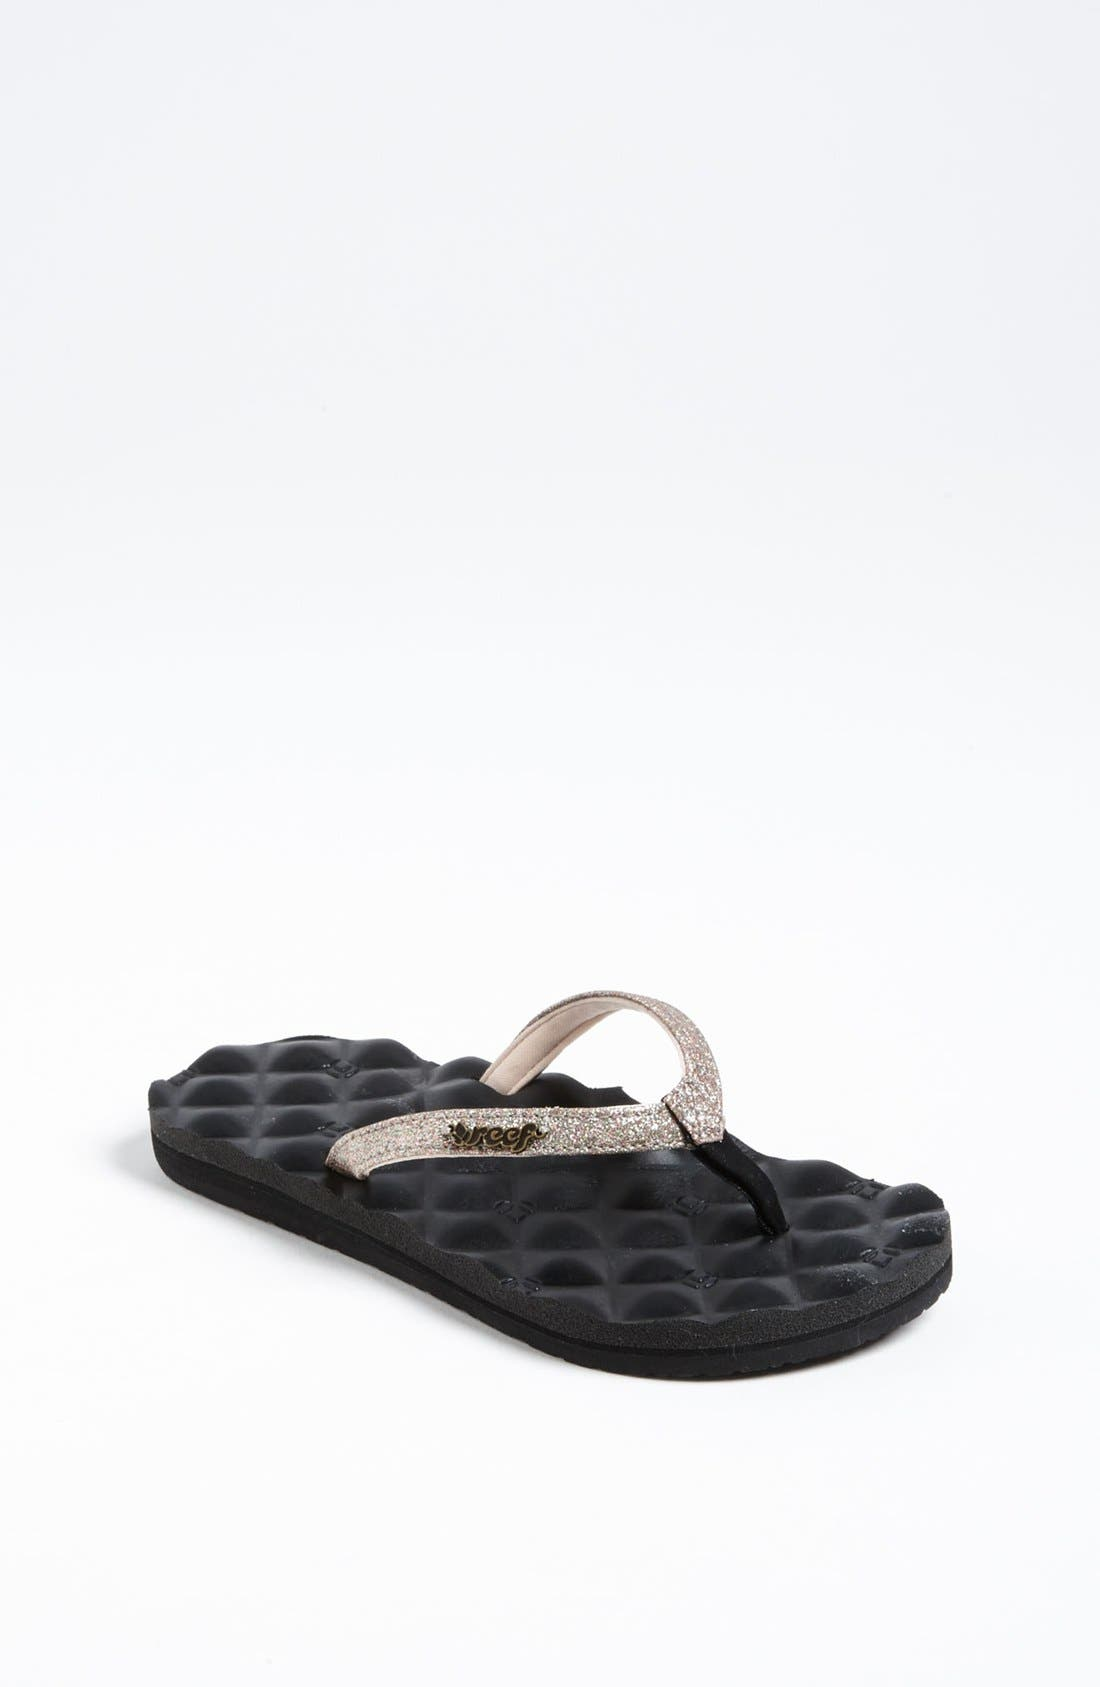 Alternate Image 1 Selected - Reef 'Little Reef Star Dreams' Sandal (Baby, Walker, Toddler, Little Kid & Big Kid)